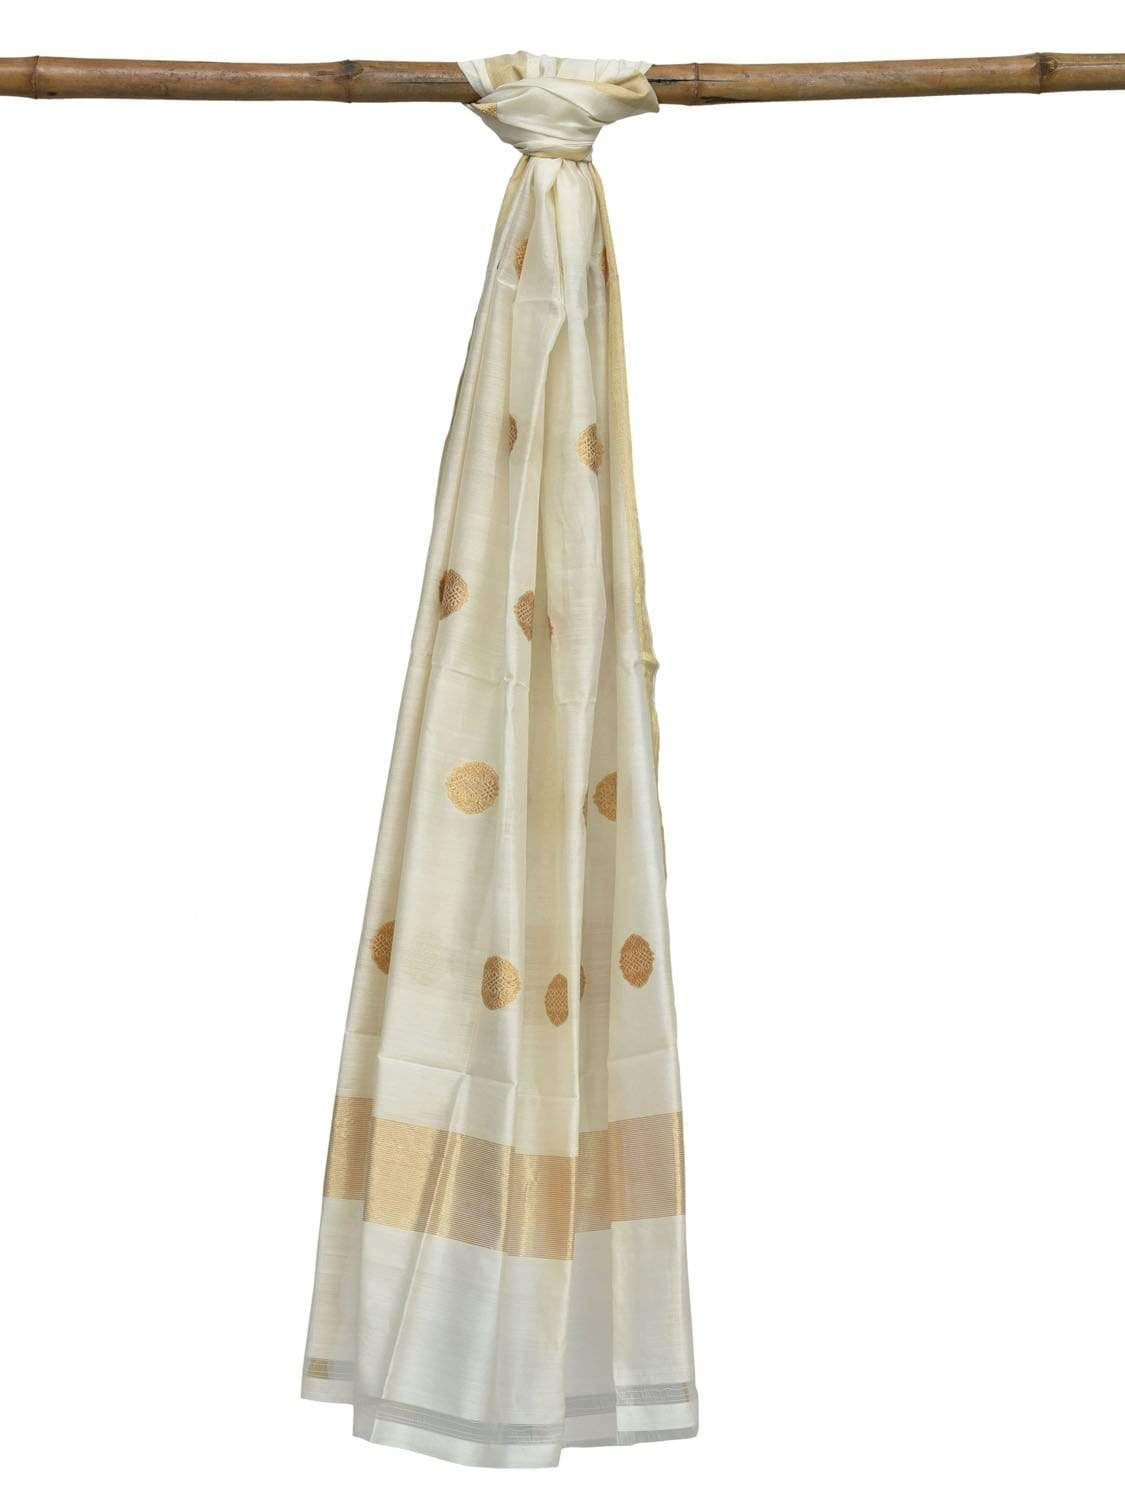 White Banaras Cotton Silk Handloom Dupatta with Buta Design ds1871